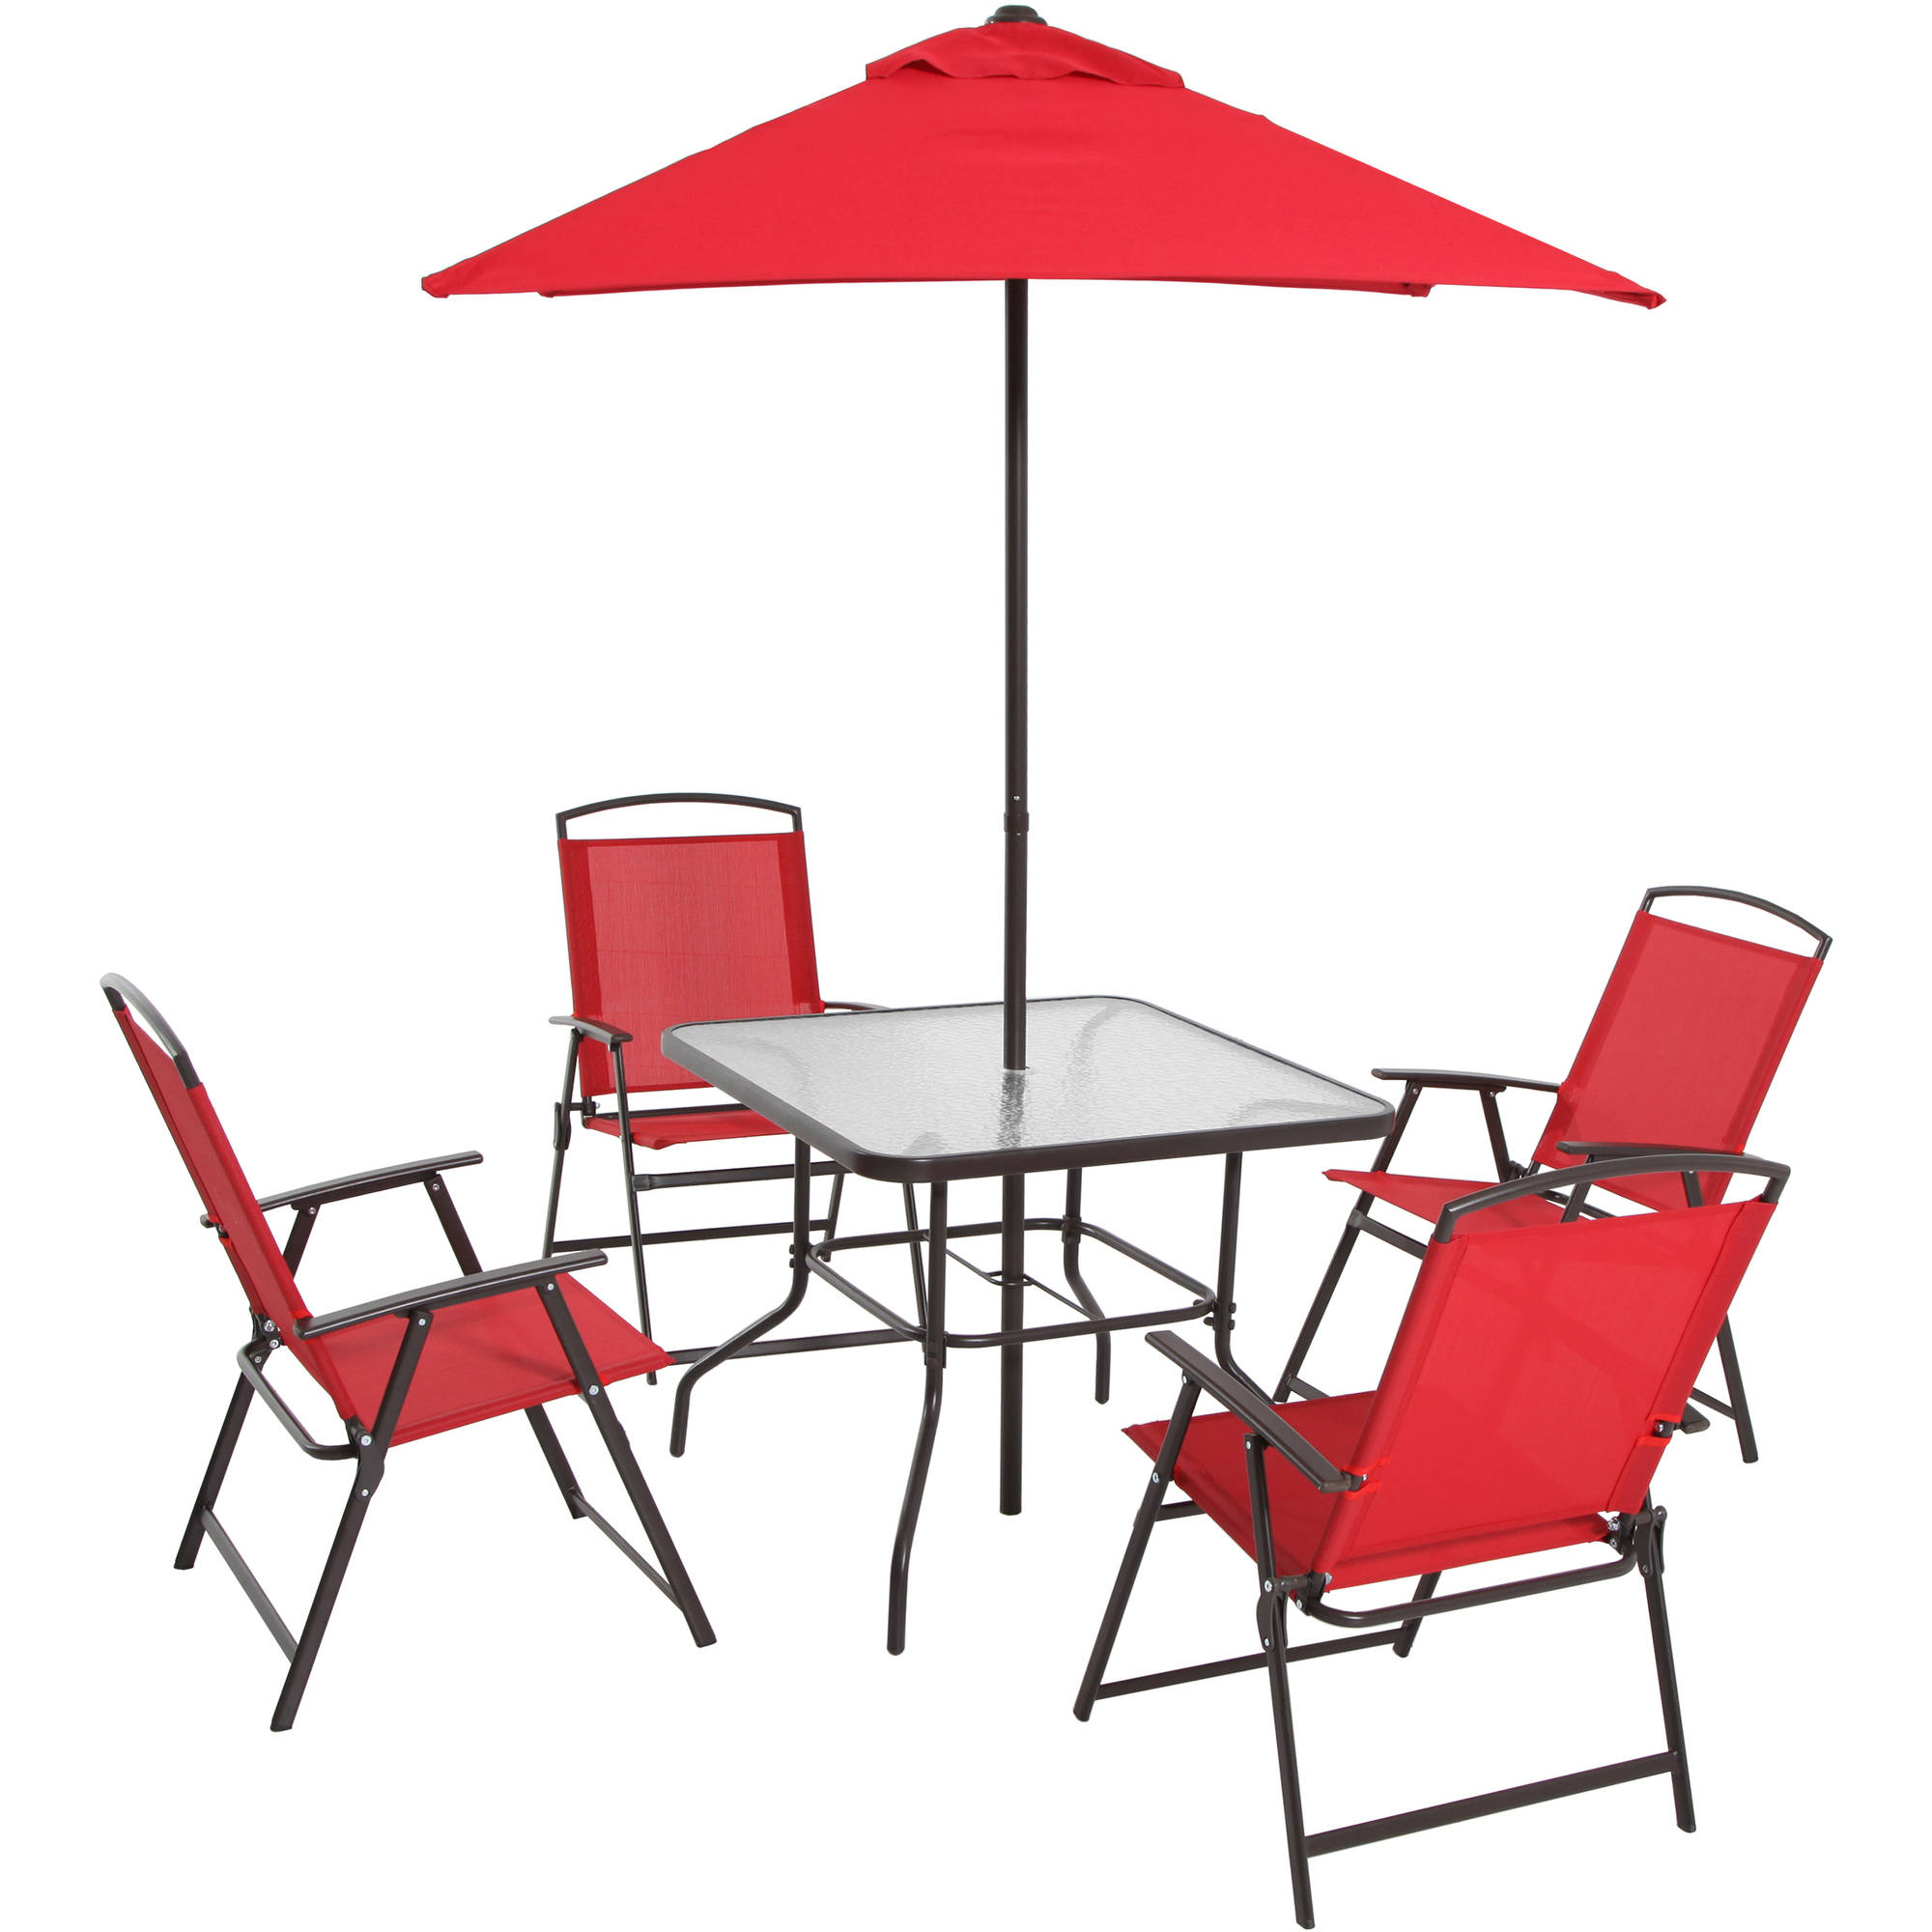 Patio Folding Chairs Mainstays Albany Lane 6 Piece Folding Dining Set Multiple Colors